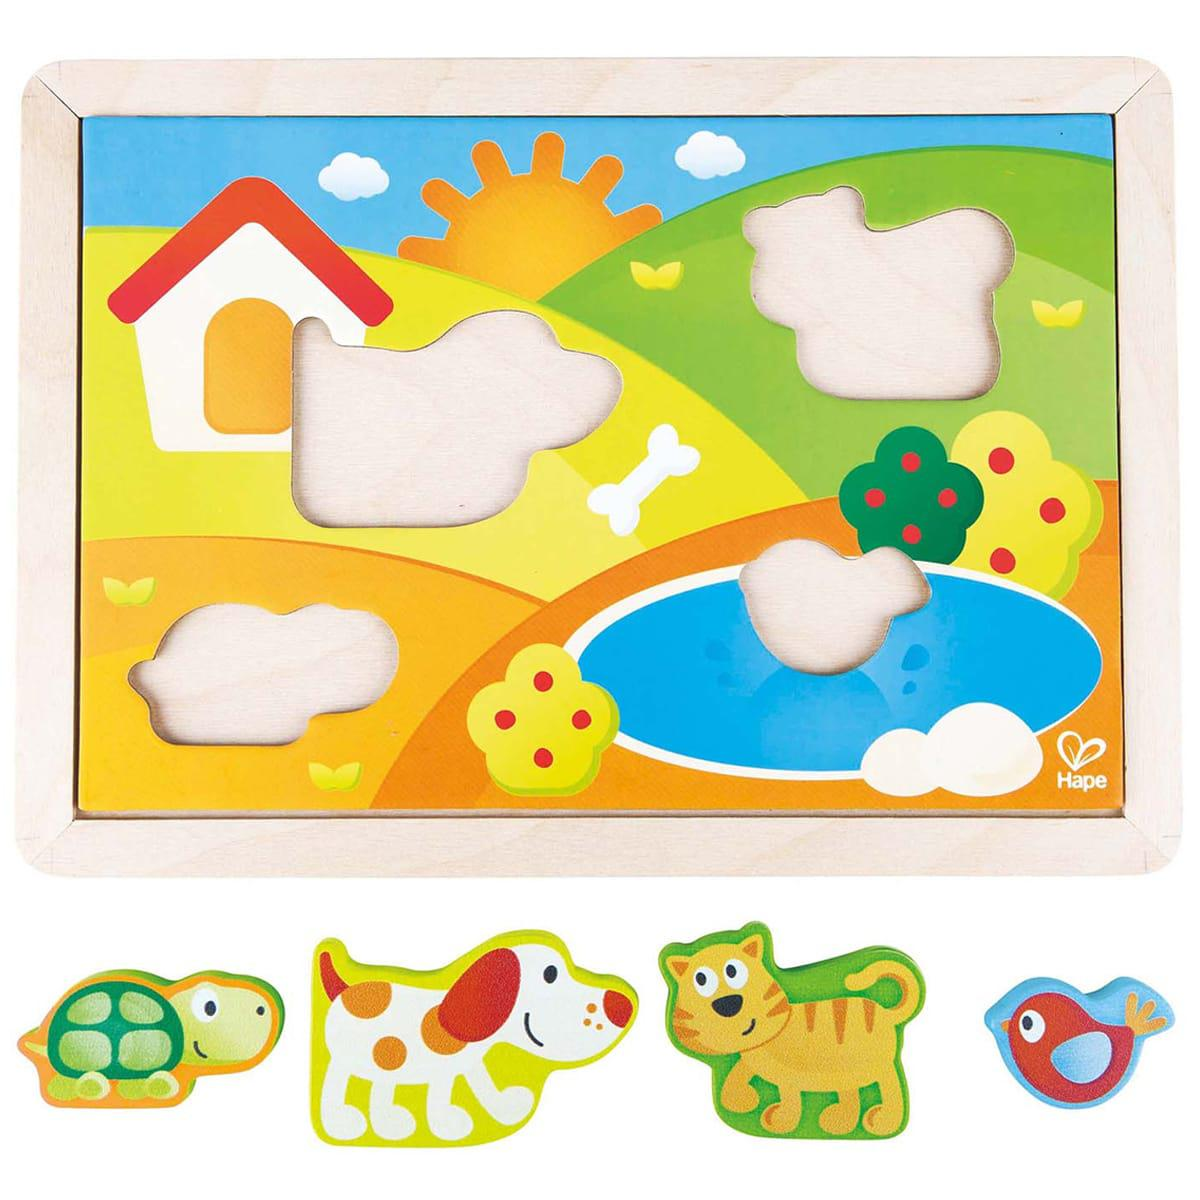 Puzzle encastrement 3-IN-1 SUNNY VALLEY Hape